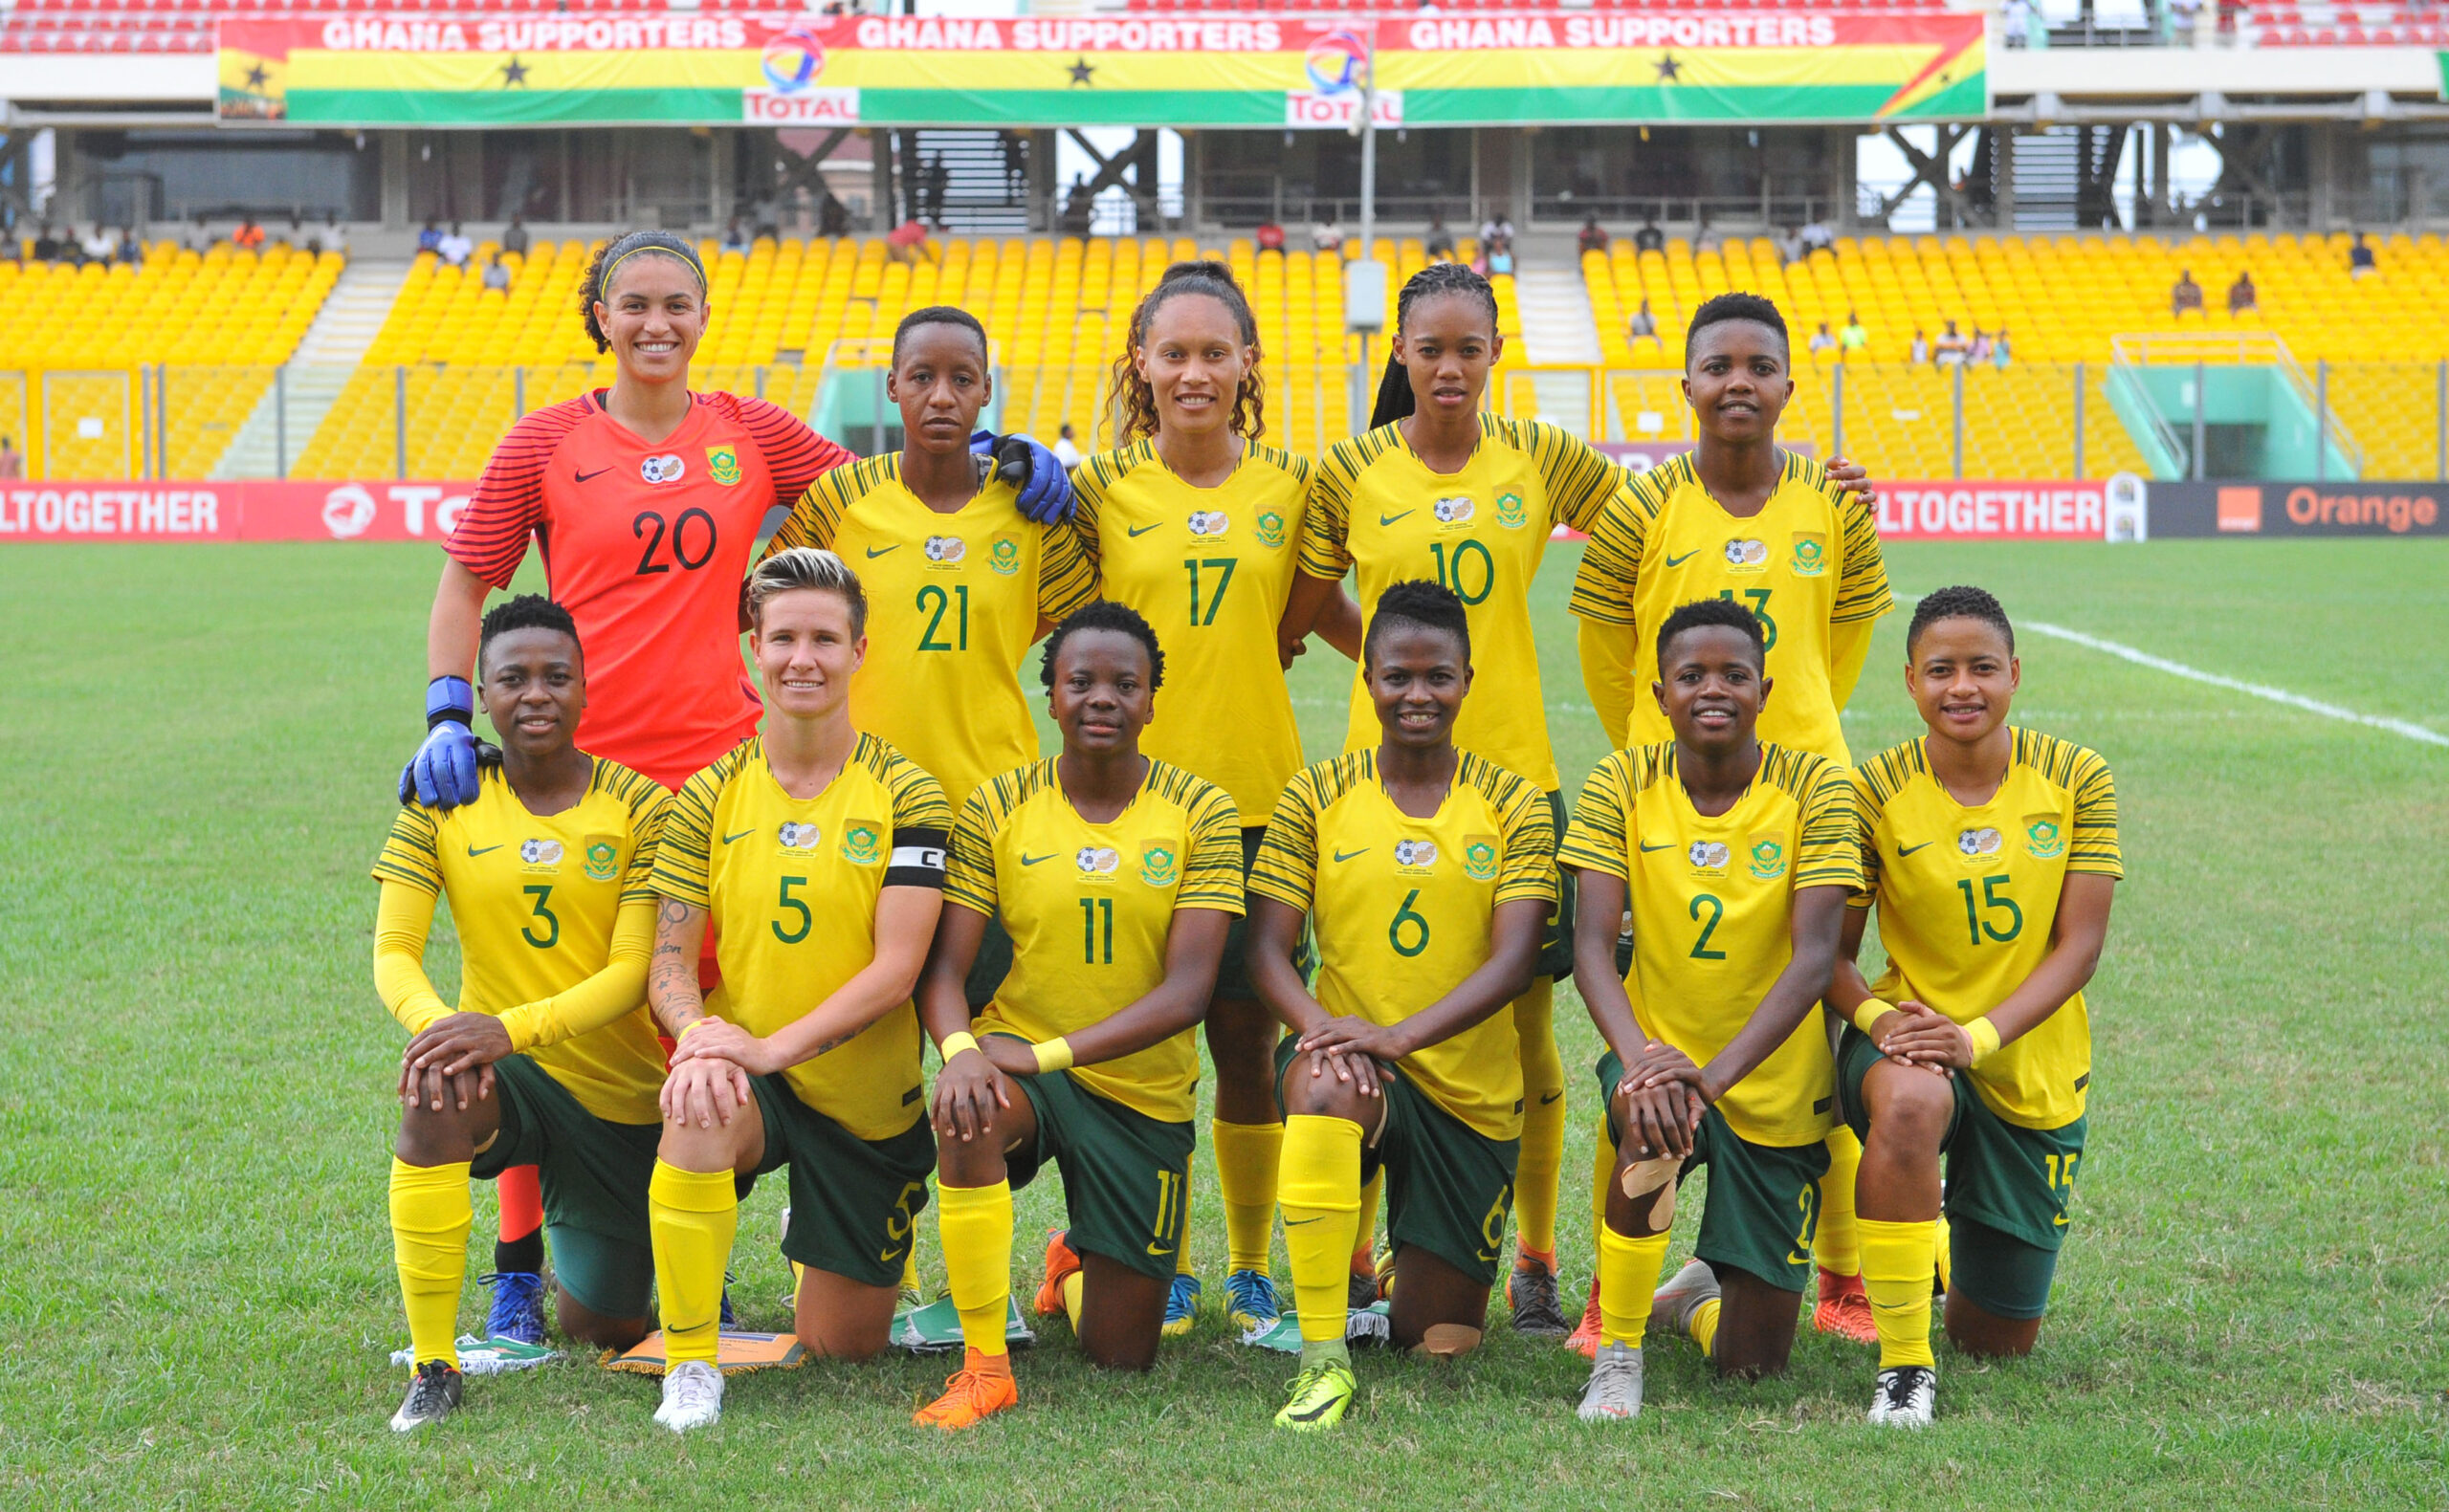 South Africa Woman Team picture during the 2018 TOTAL African Womens Cup of Nations match between South Africa and Zambia  on the 24 November 2018 at  Accra Sports Stadium, Ghana   / Pic Sydney Mahlangu/BackpagePix